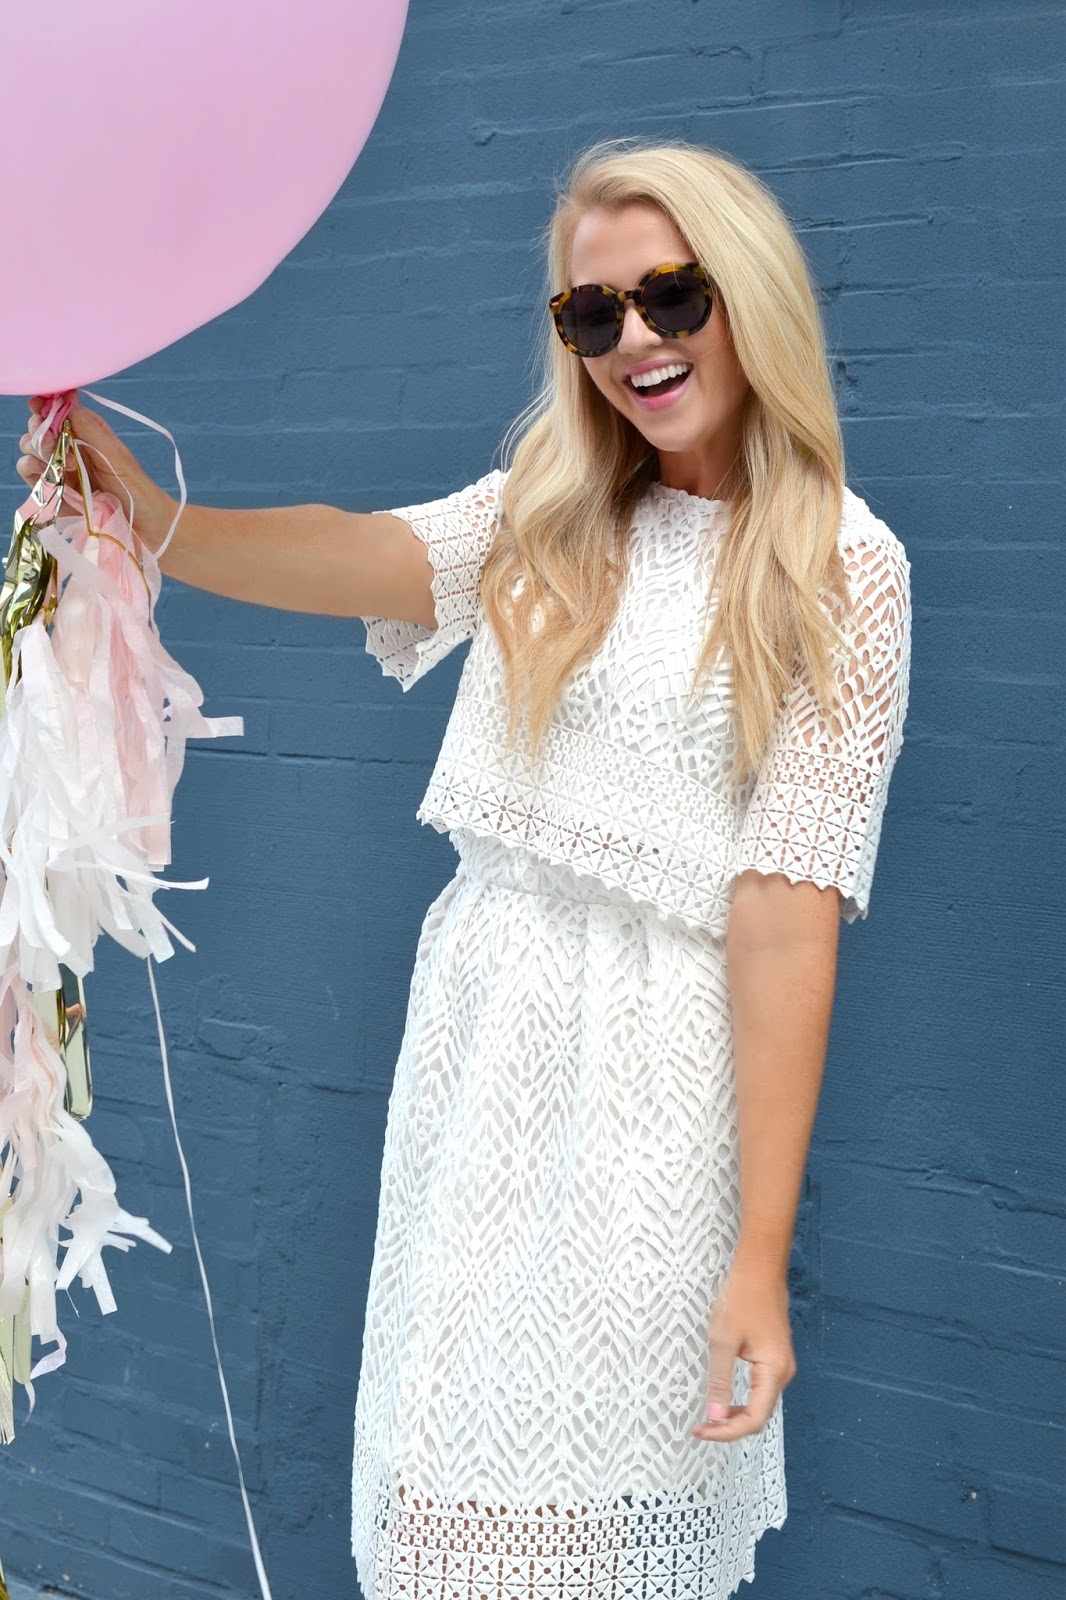 white lace top and skirt set